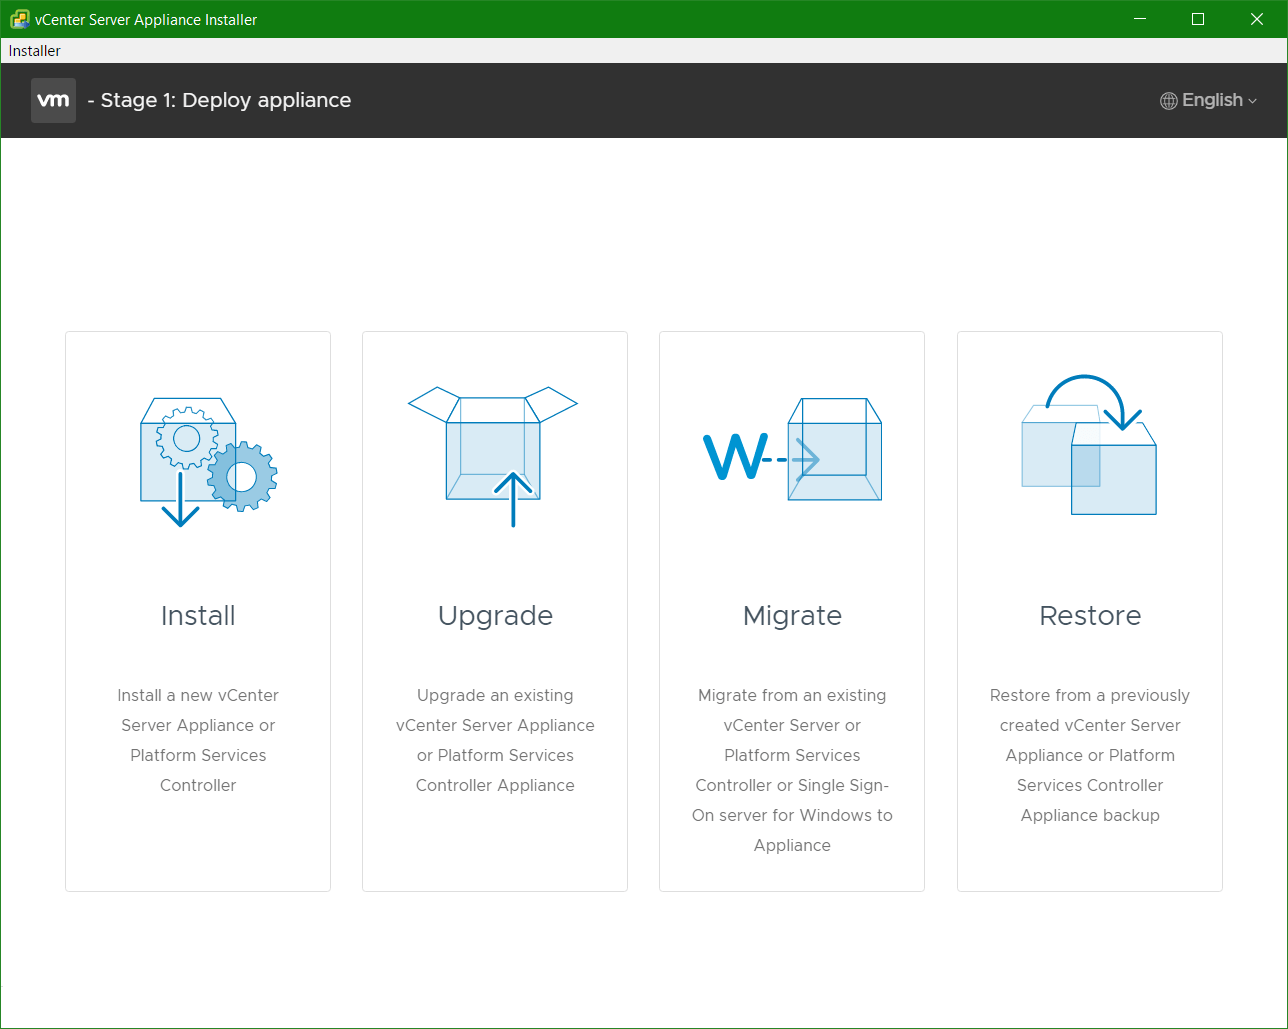 domalab.com VCSA upgrade stage 1 deploy appliance